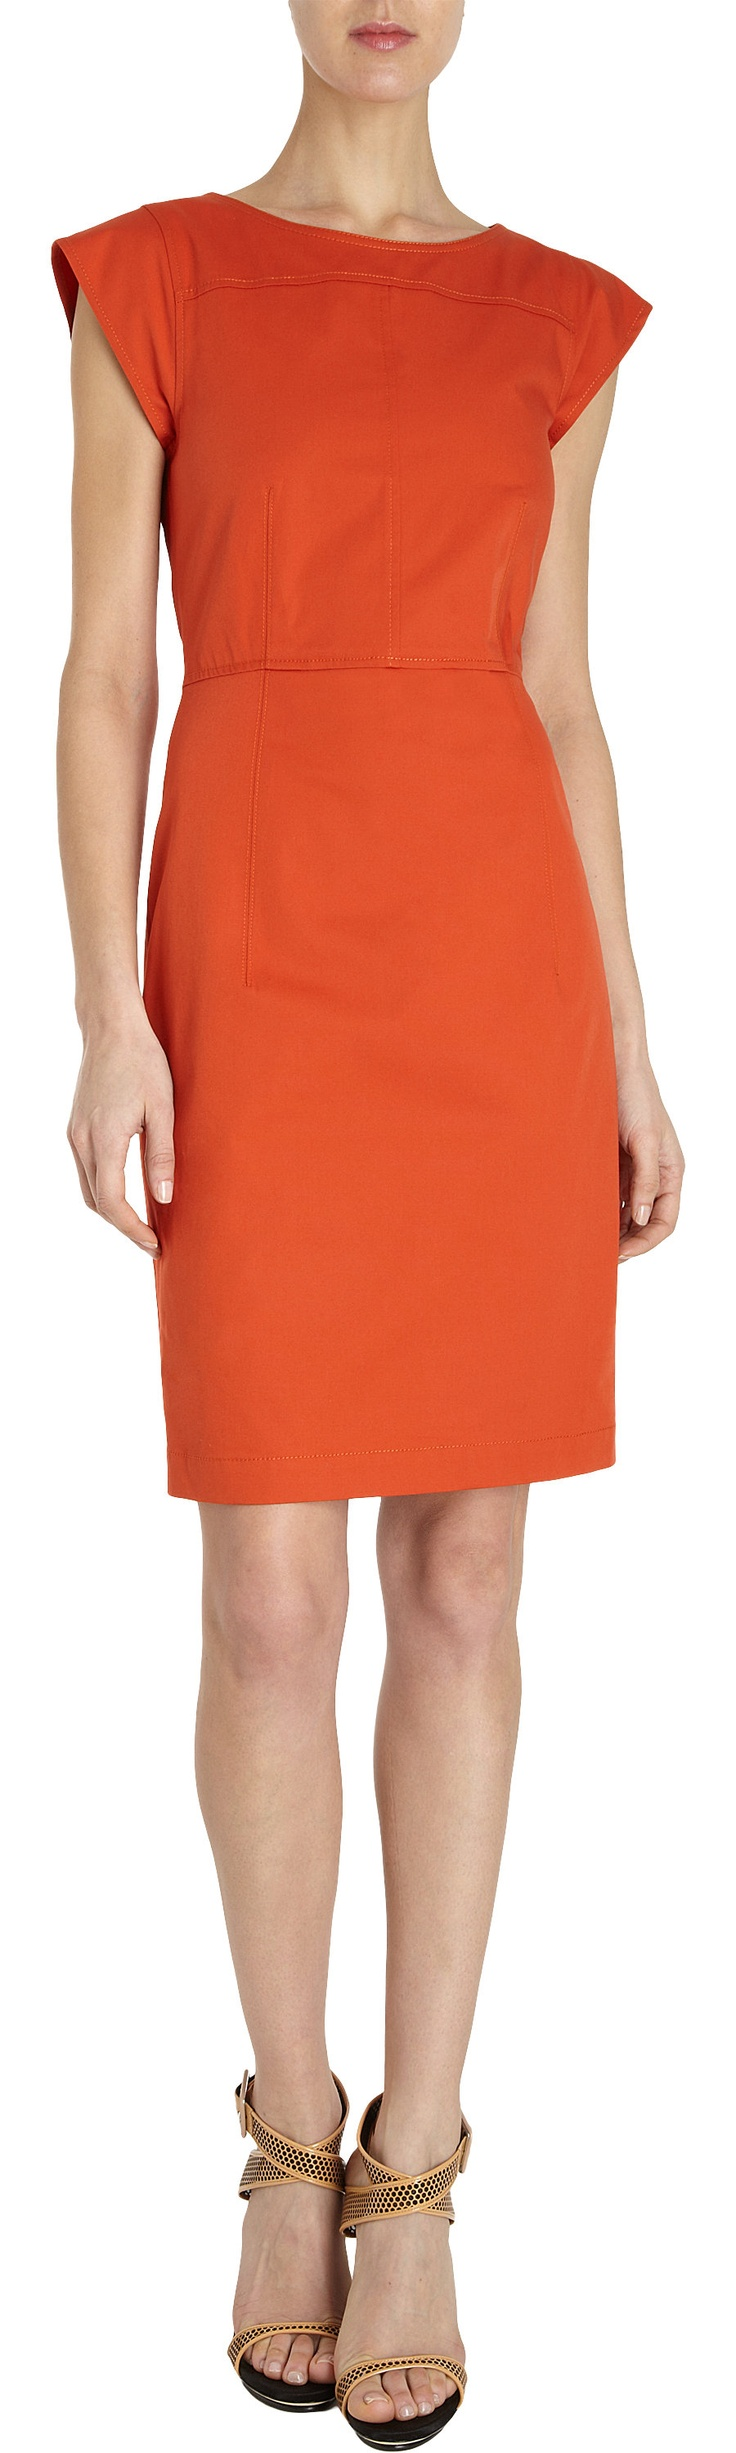 Derek Lam Cap Sleeve Sheath Dress at Barneys.com